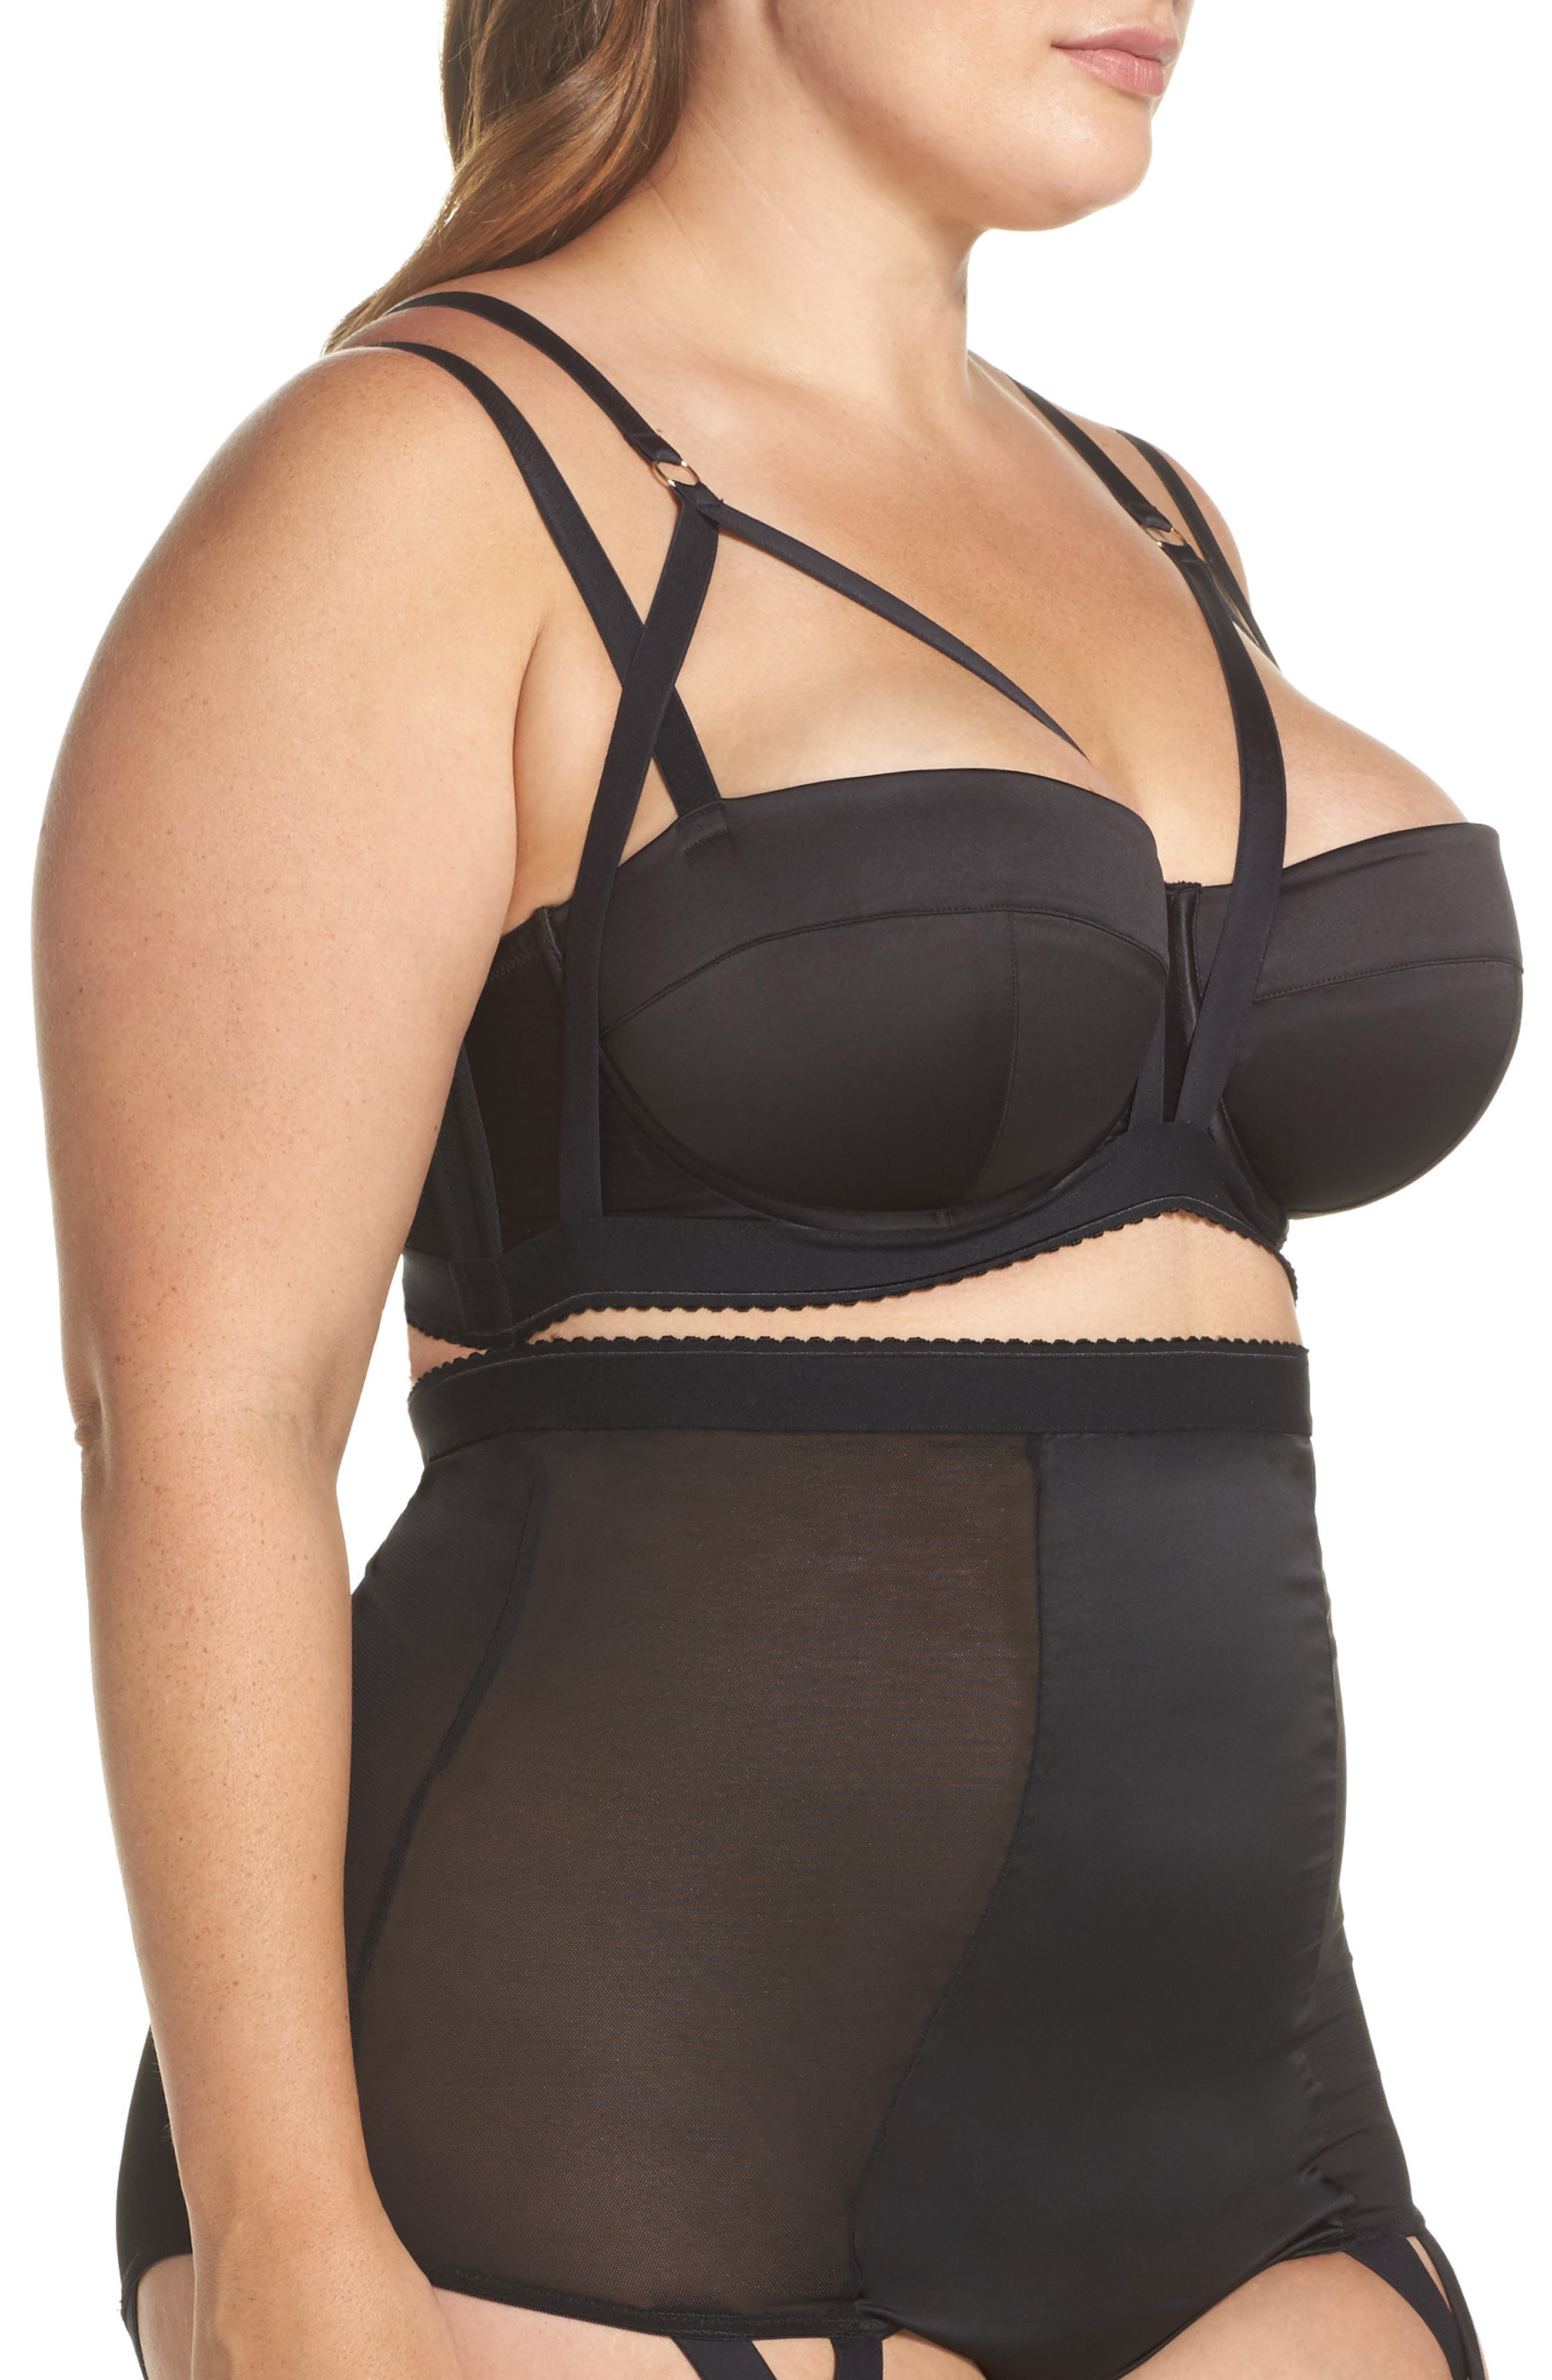 Playful Promies Candace Noir Strappy Underwire Bra,                             Alternate thumbnail 3, color,